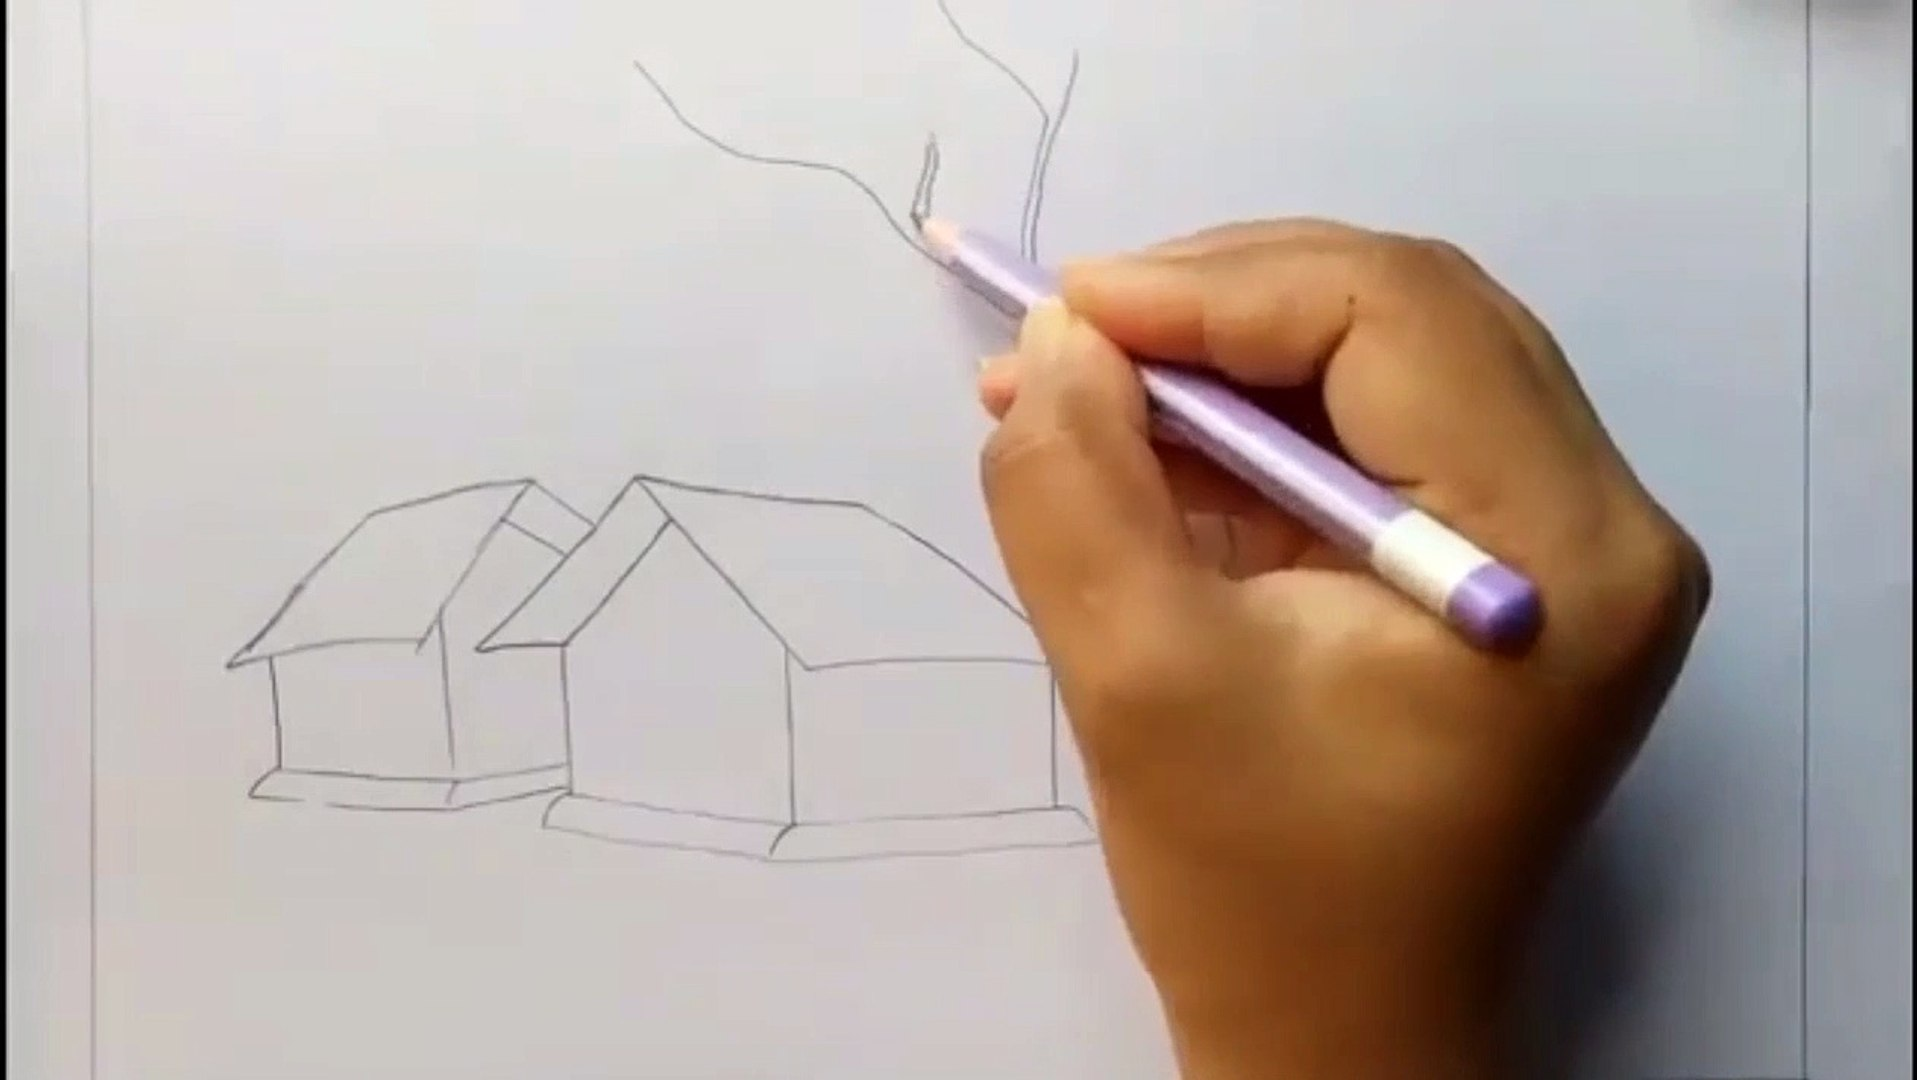 Amazing Art How To Draw Scenery Of Light And Shadow By Pencil Sketch Art N Tricks